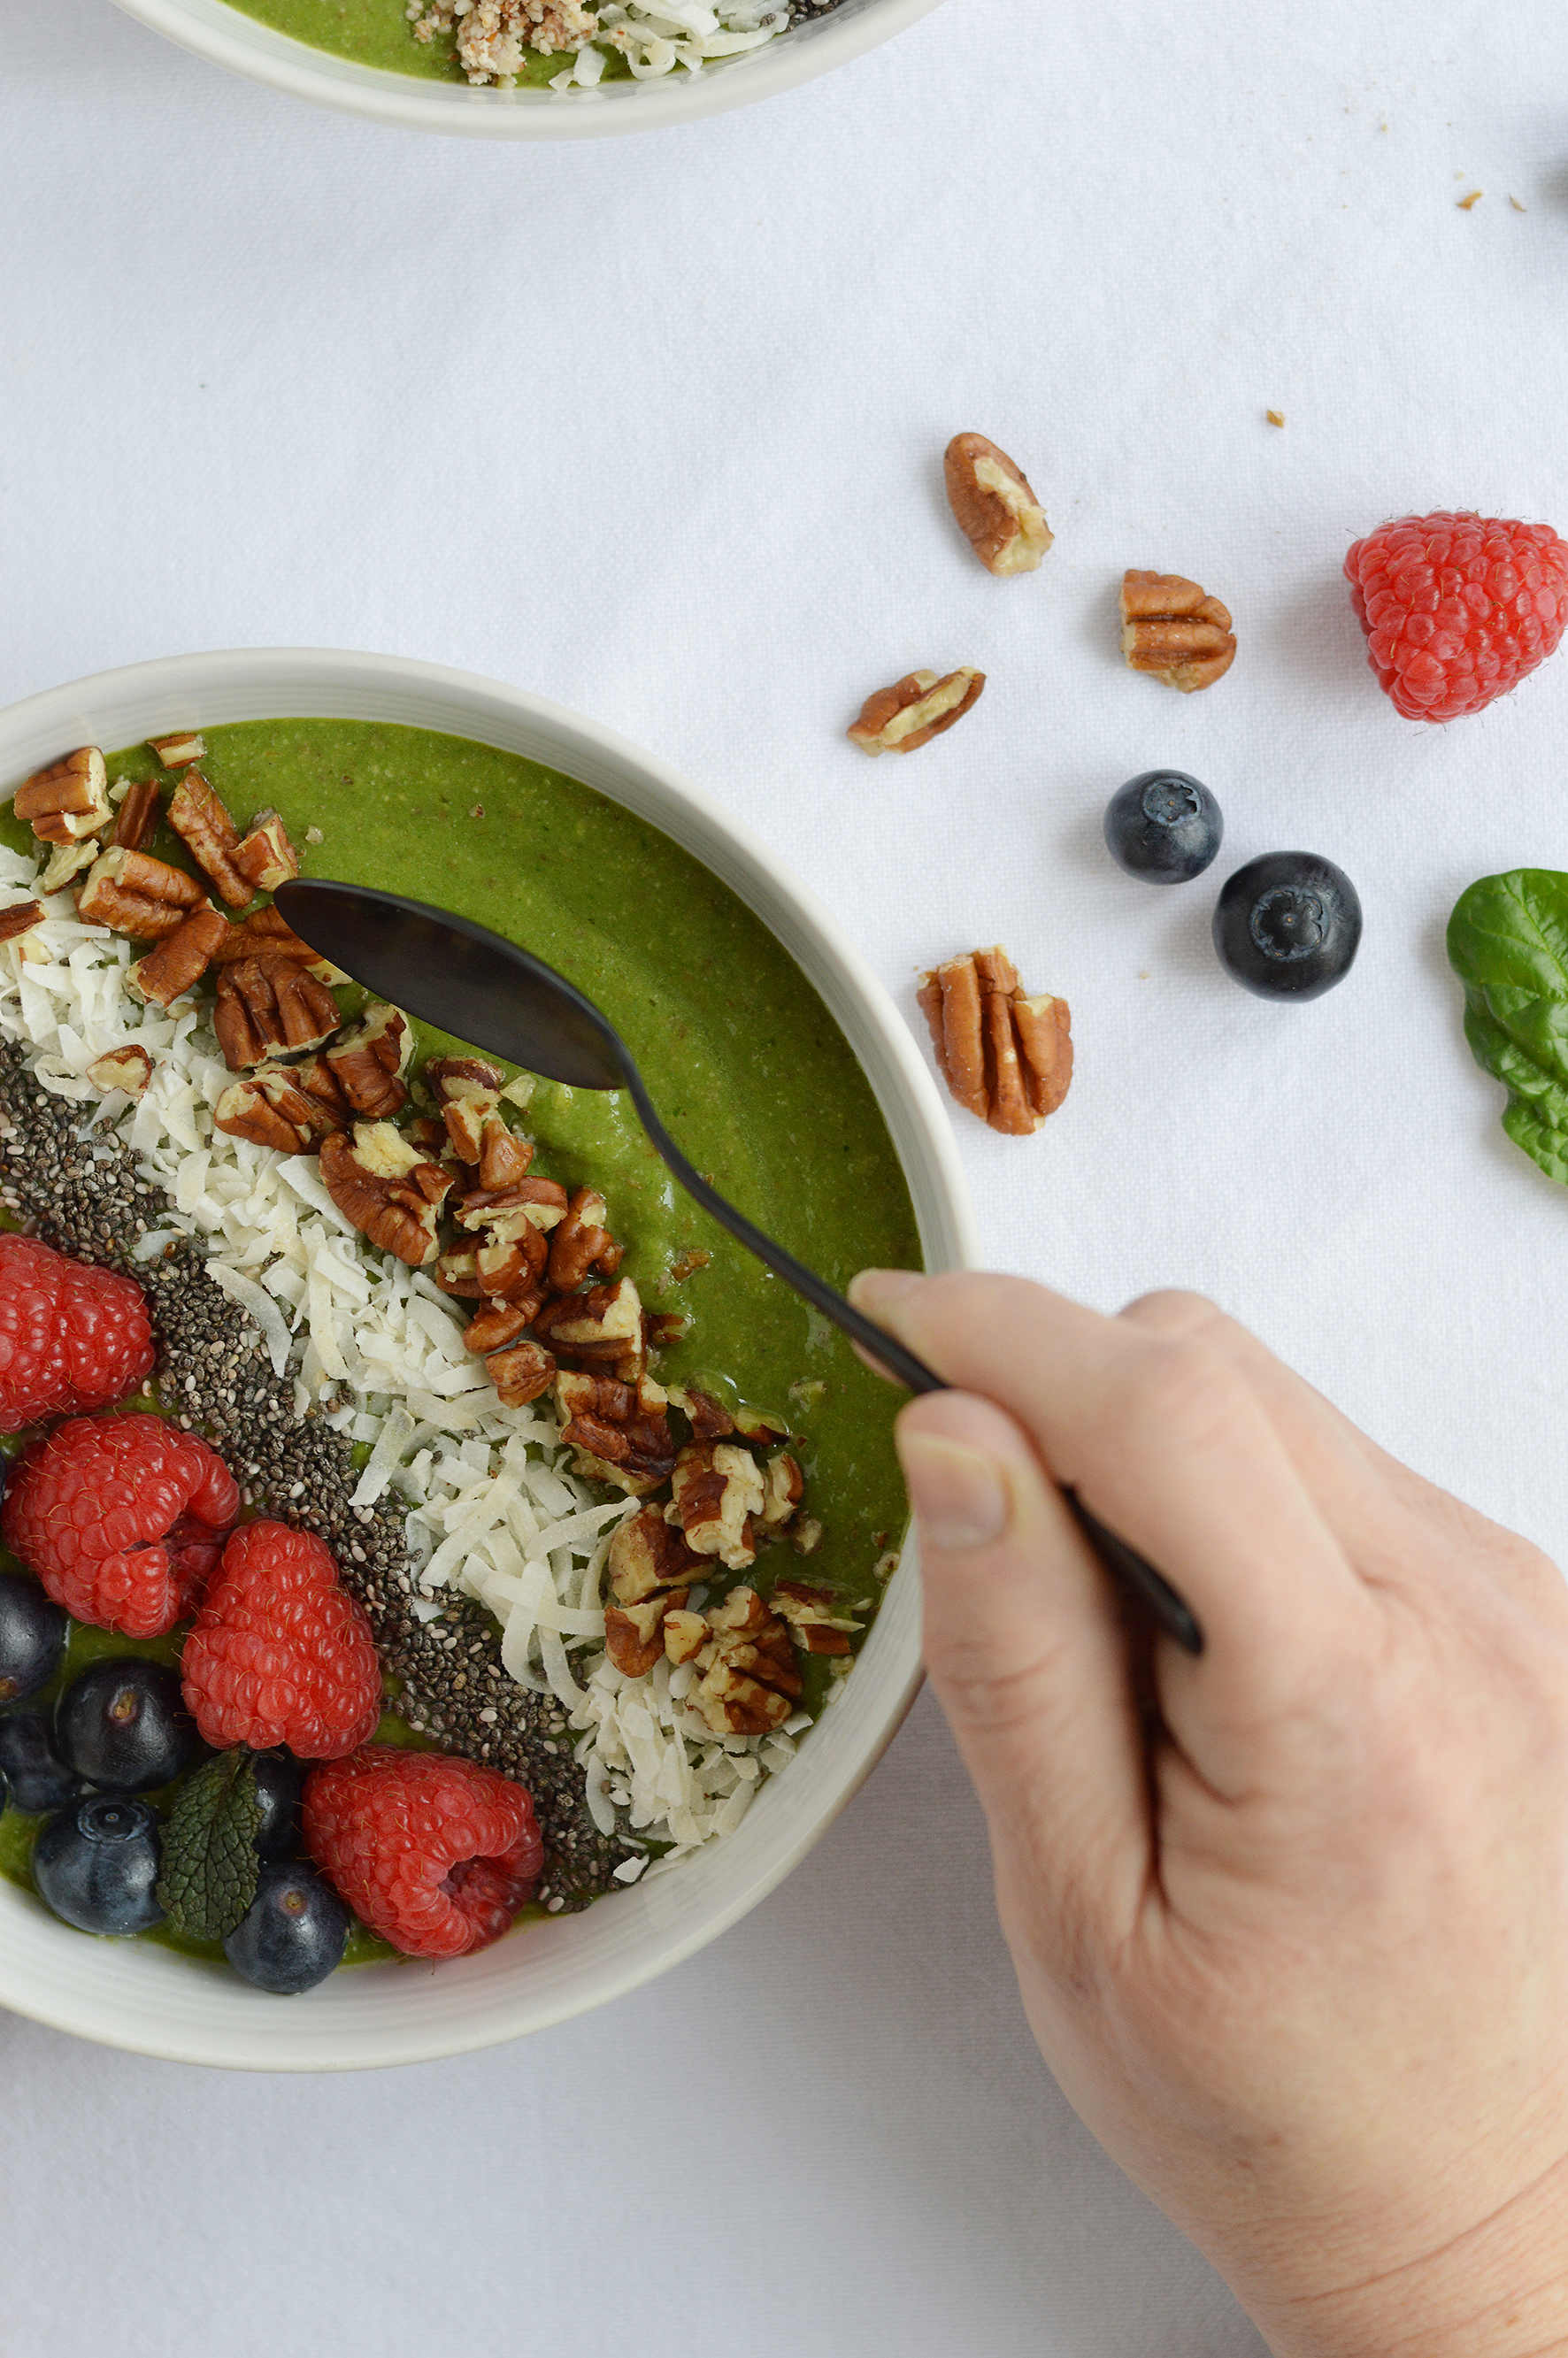 Green smoothie bowl / Plus une miette